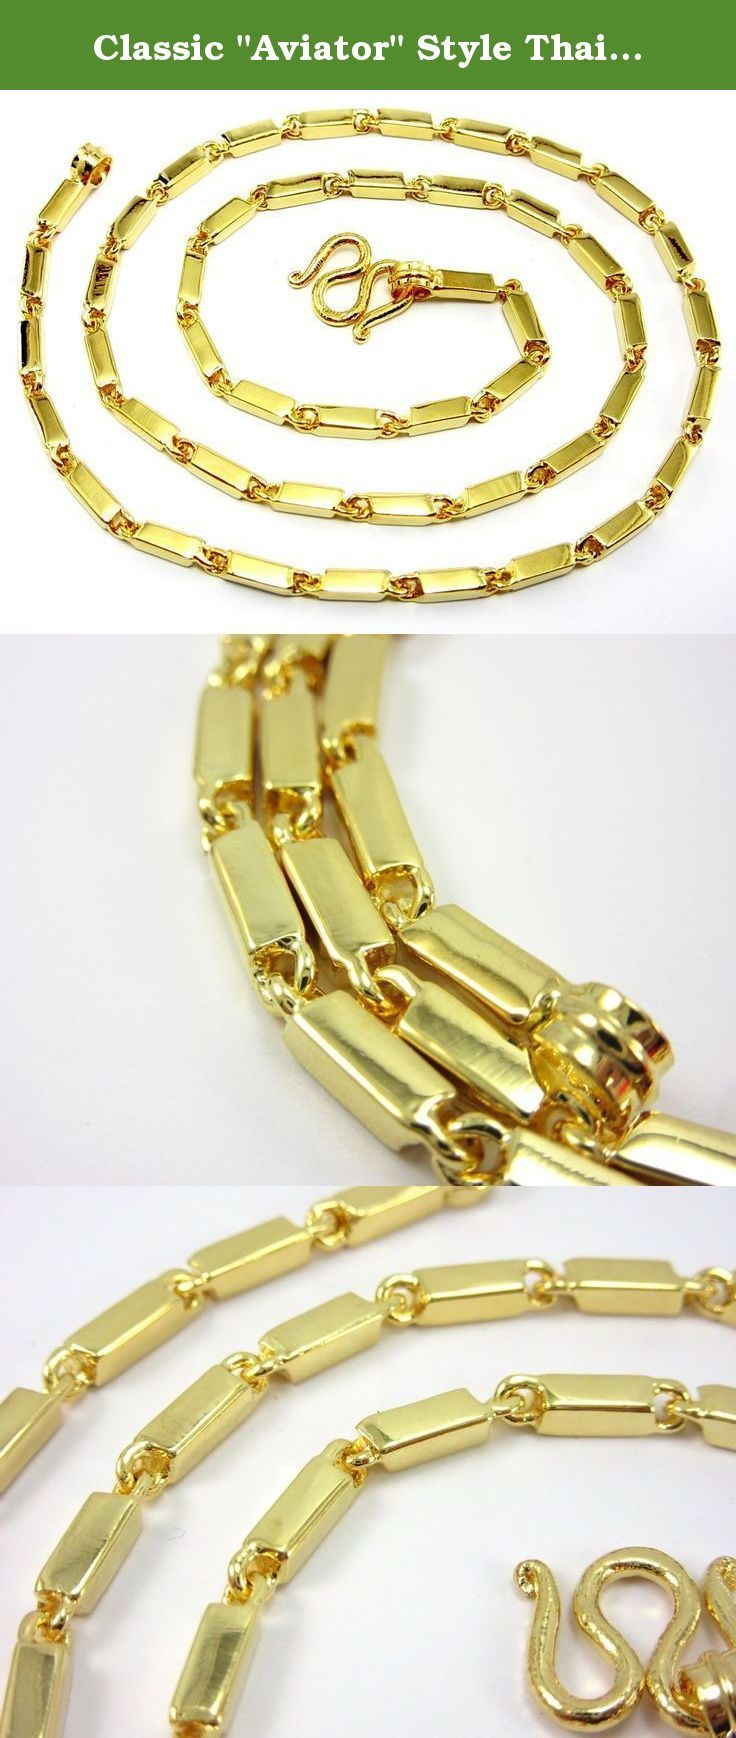 Classic Aviator Style Thai Barlink 24k Gold Plated 20 Baht Chain